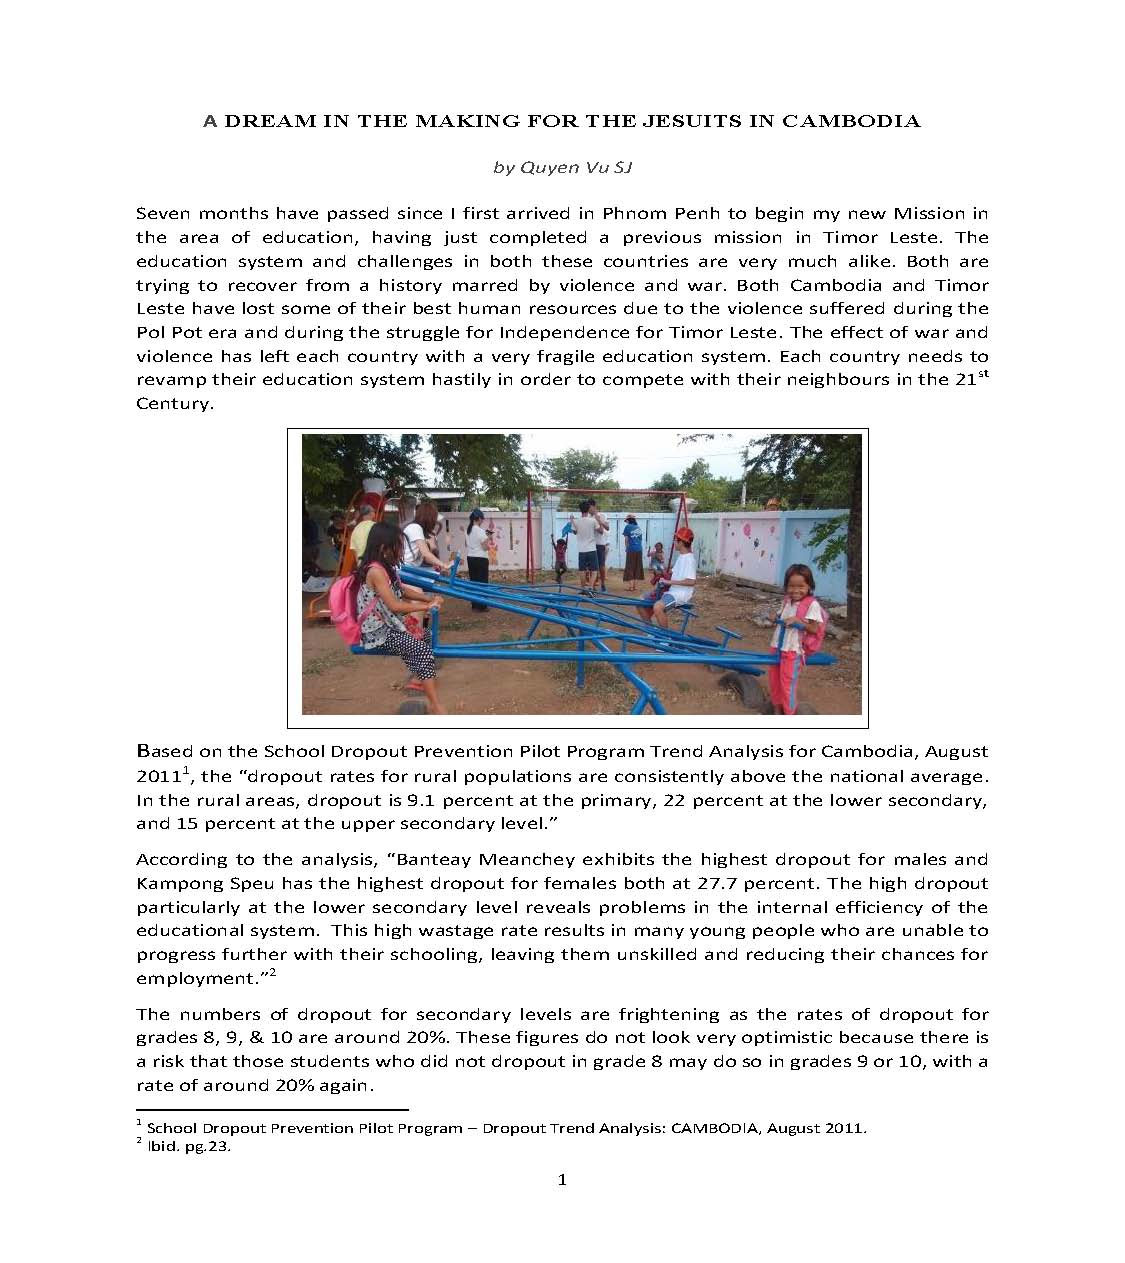 A Dream in the Making for the Jesuits in Cambodia by Quyen Vu SJ_Page_1